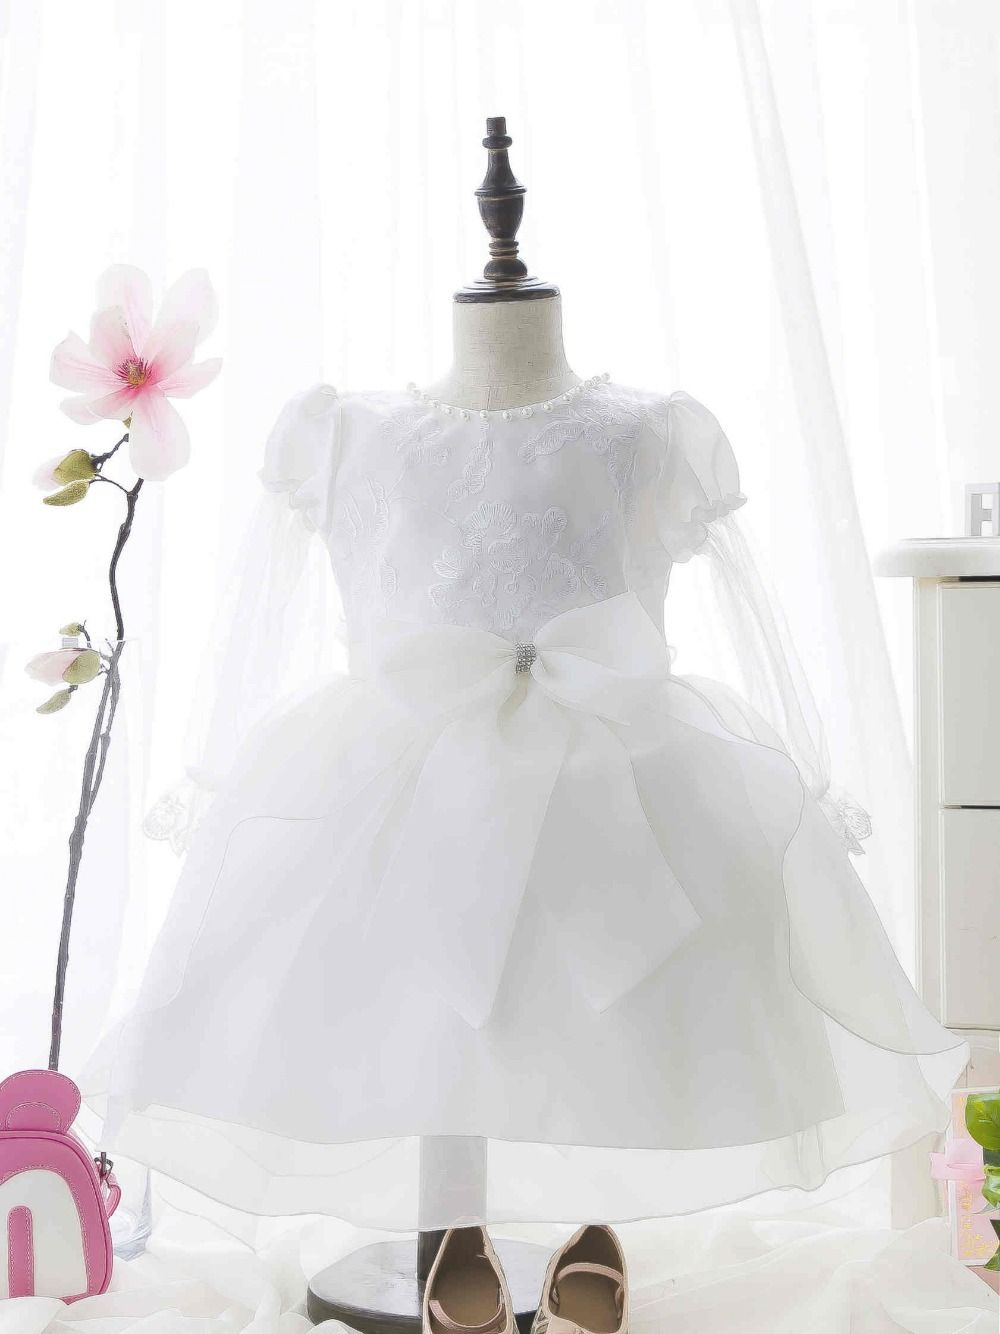 Little girl dresses for weddings  Click to Buy ucuc  Summer Baby Girl Toddler Lace Clothing Dress